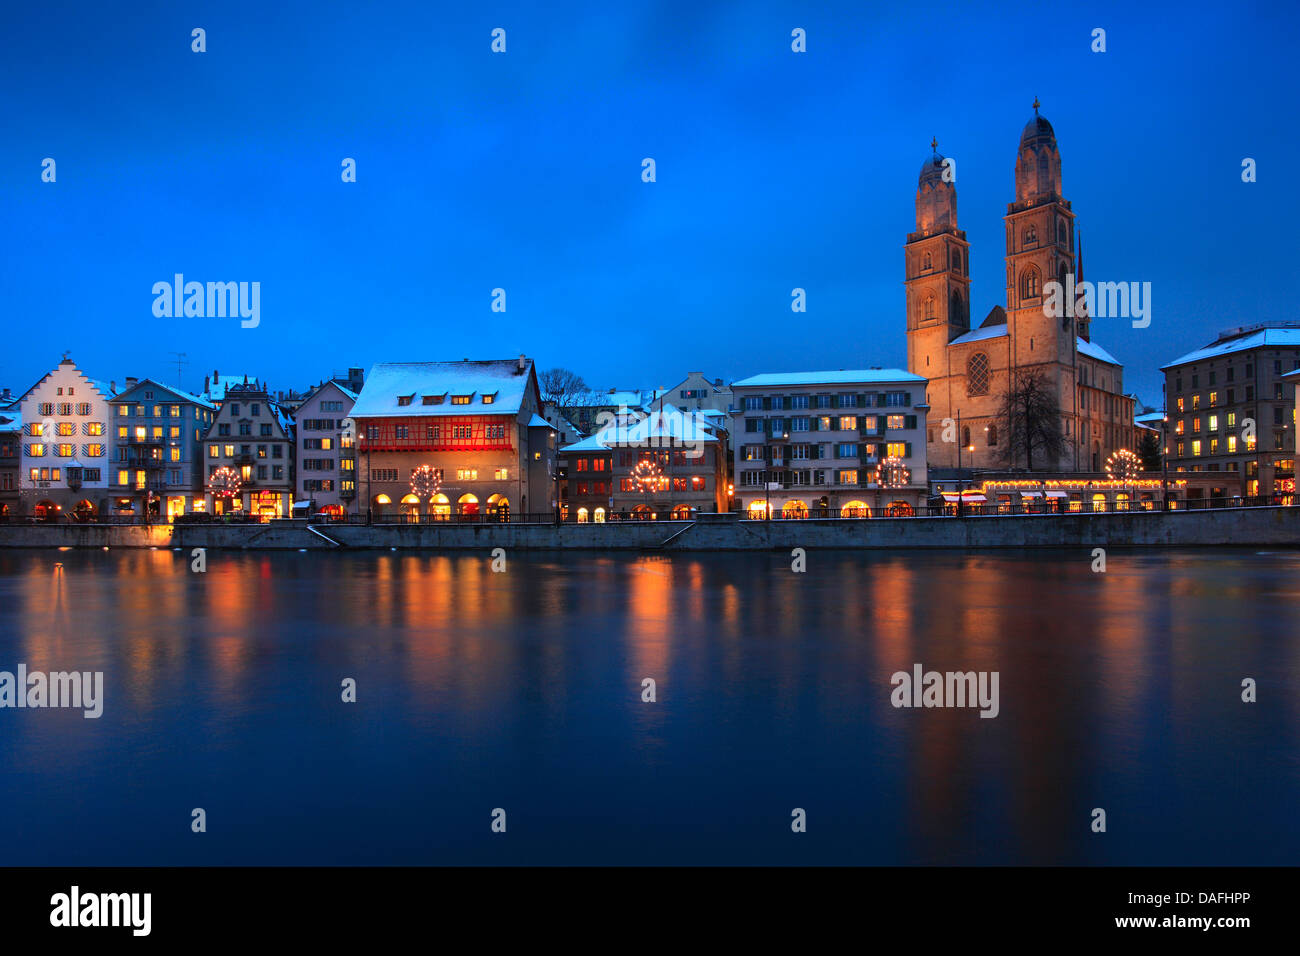 old town, Limmatquai with Guild houses and Grossmuenster, Switzerland, Zurich - Stock Image